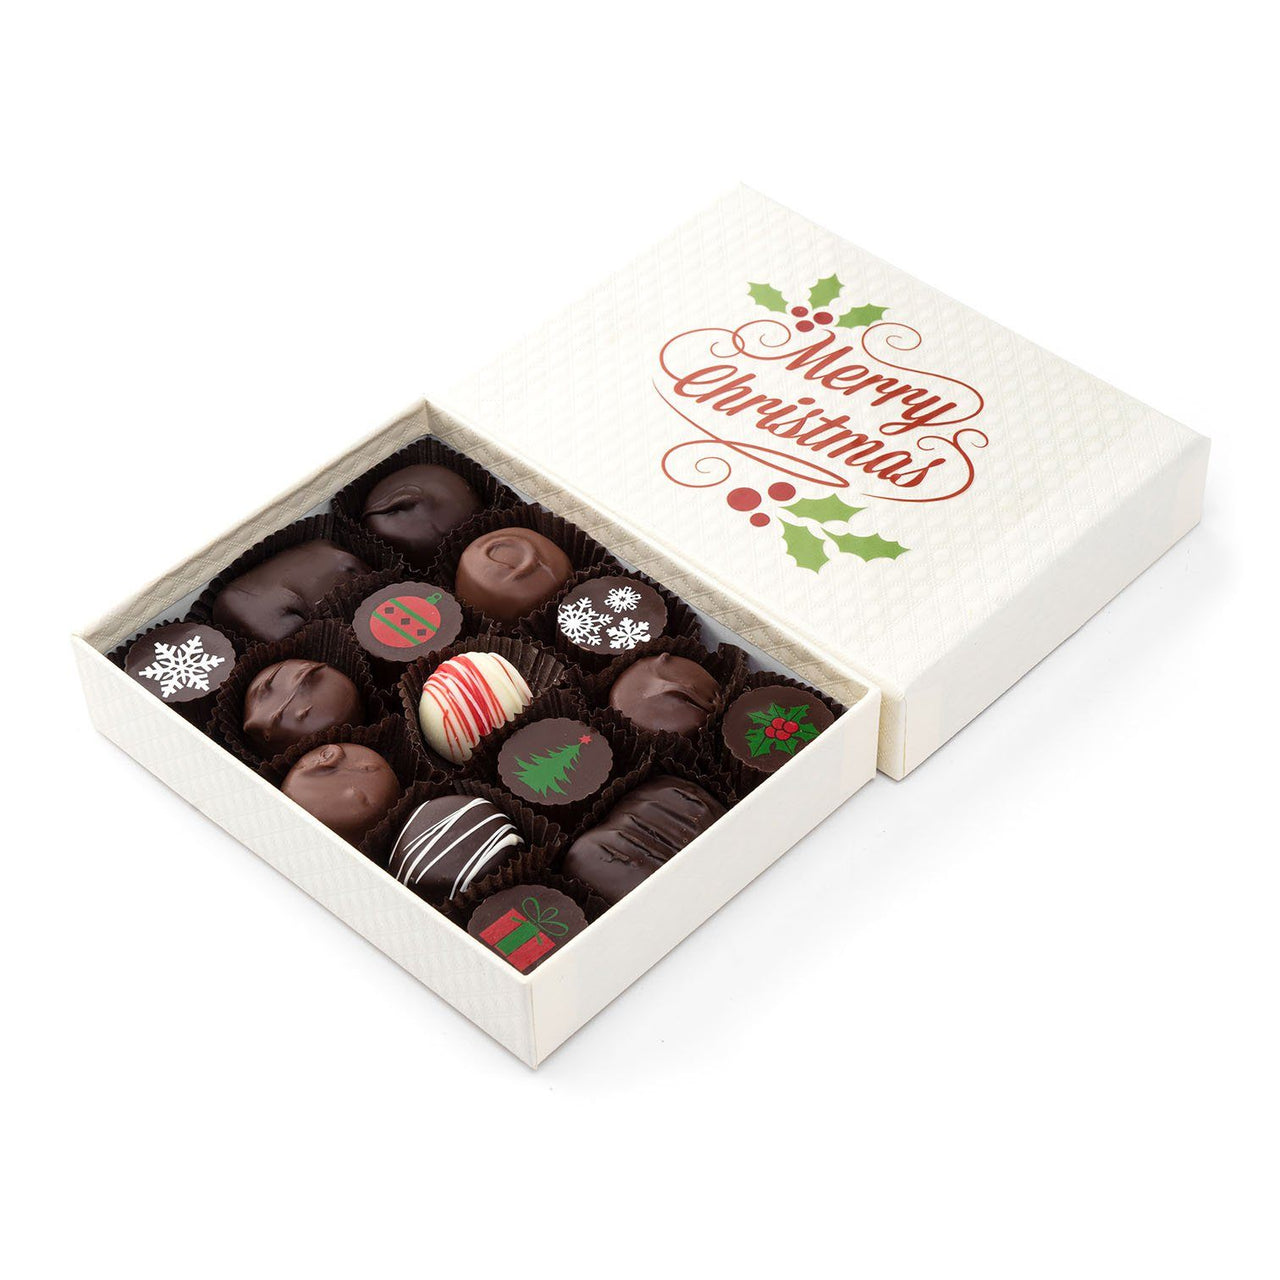 Christmas Chocolate Assortment (4611168141427) (4614279004275) (4614329892979) (4614330384499) (4614331826291)